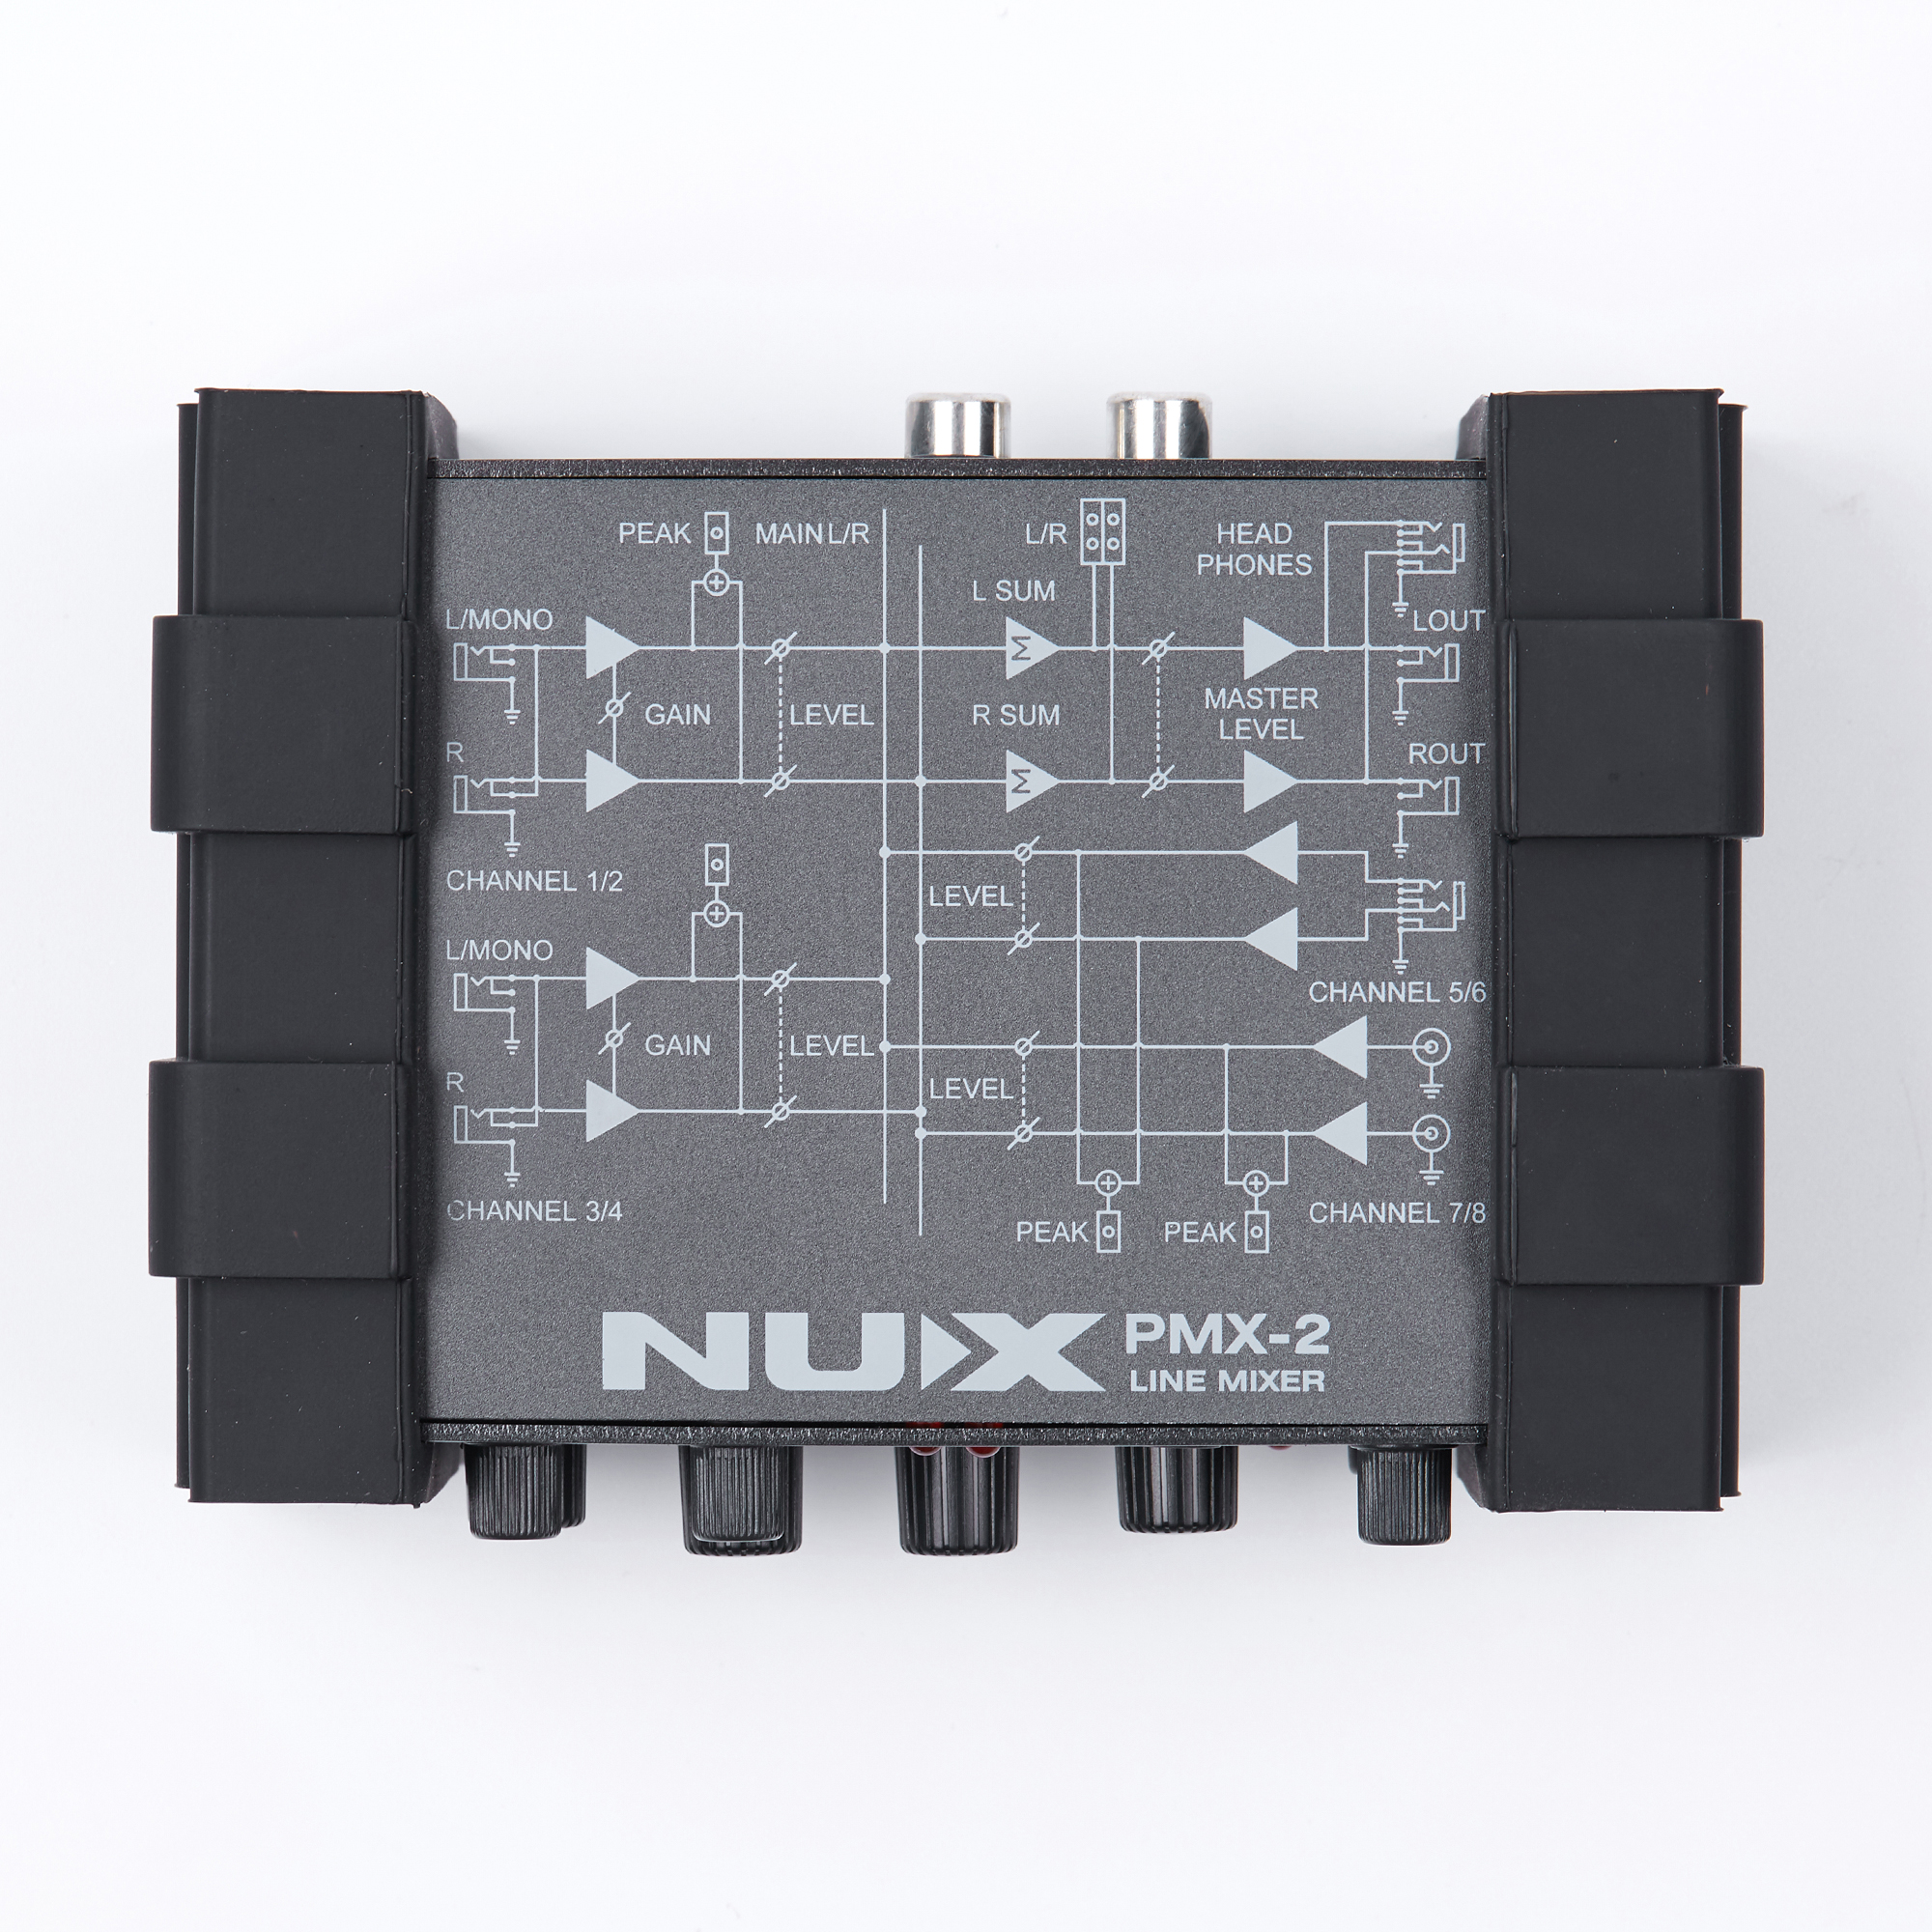 Gain Control 8 Inputs and 2 Outputs NUX PMX-2 Multi-Channel Mini Mixer 30 Musical Instruments Accessories for Guitar Bass Player p301 16 qfn